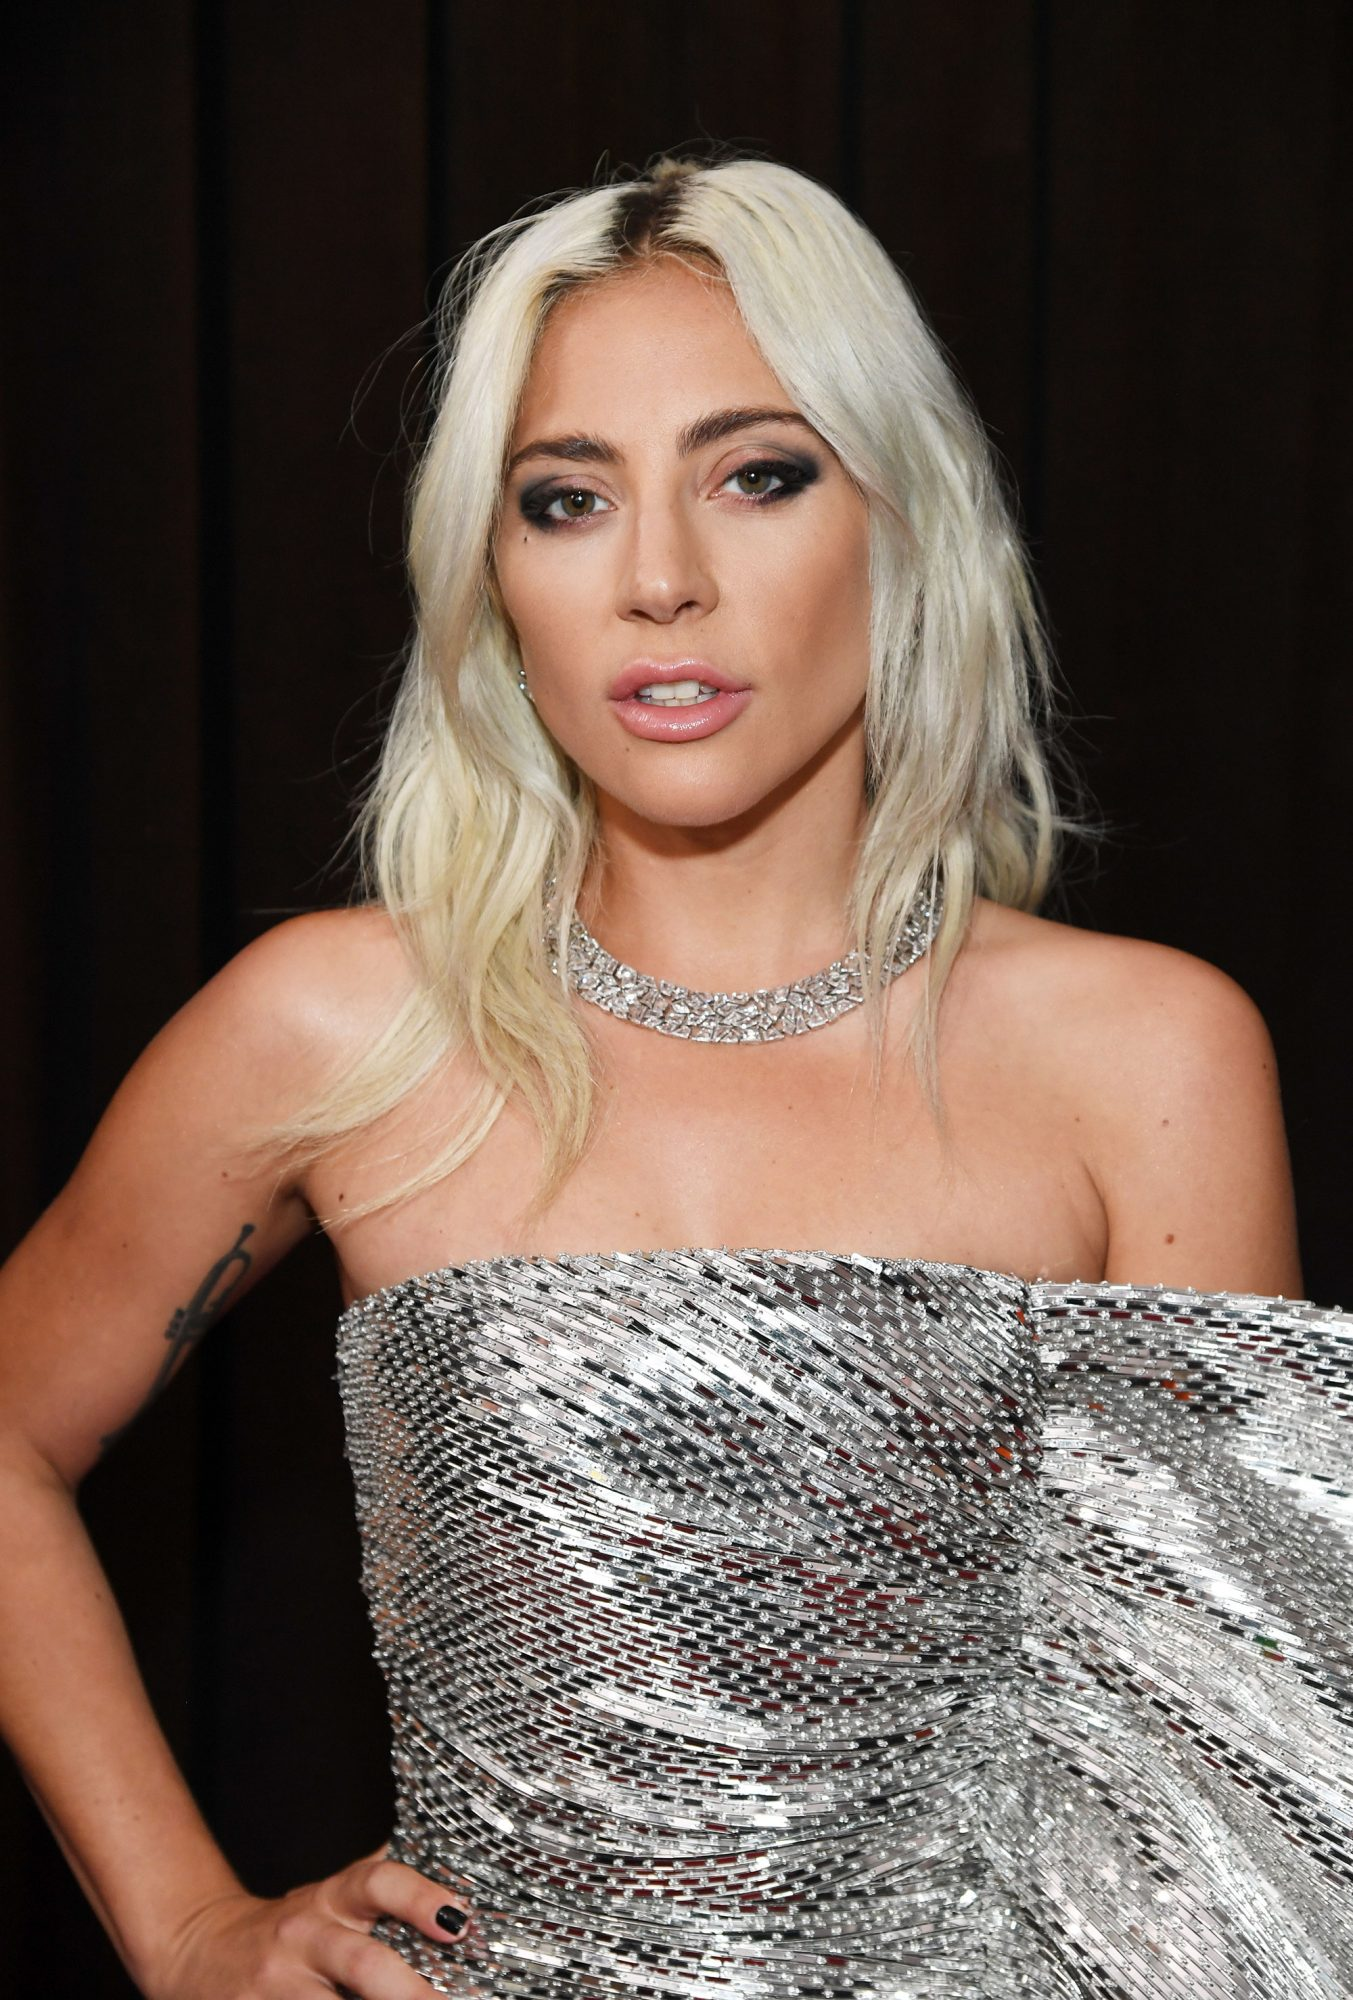 The Best Beauty Looks from the 2019 Grammy Awards